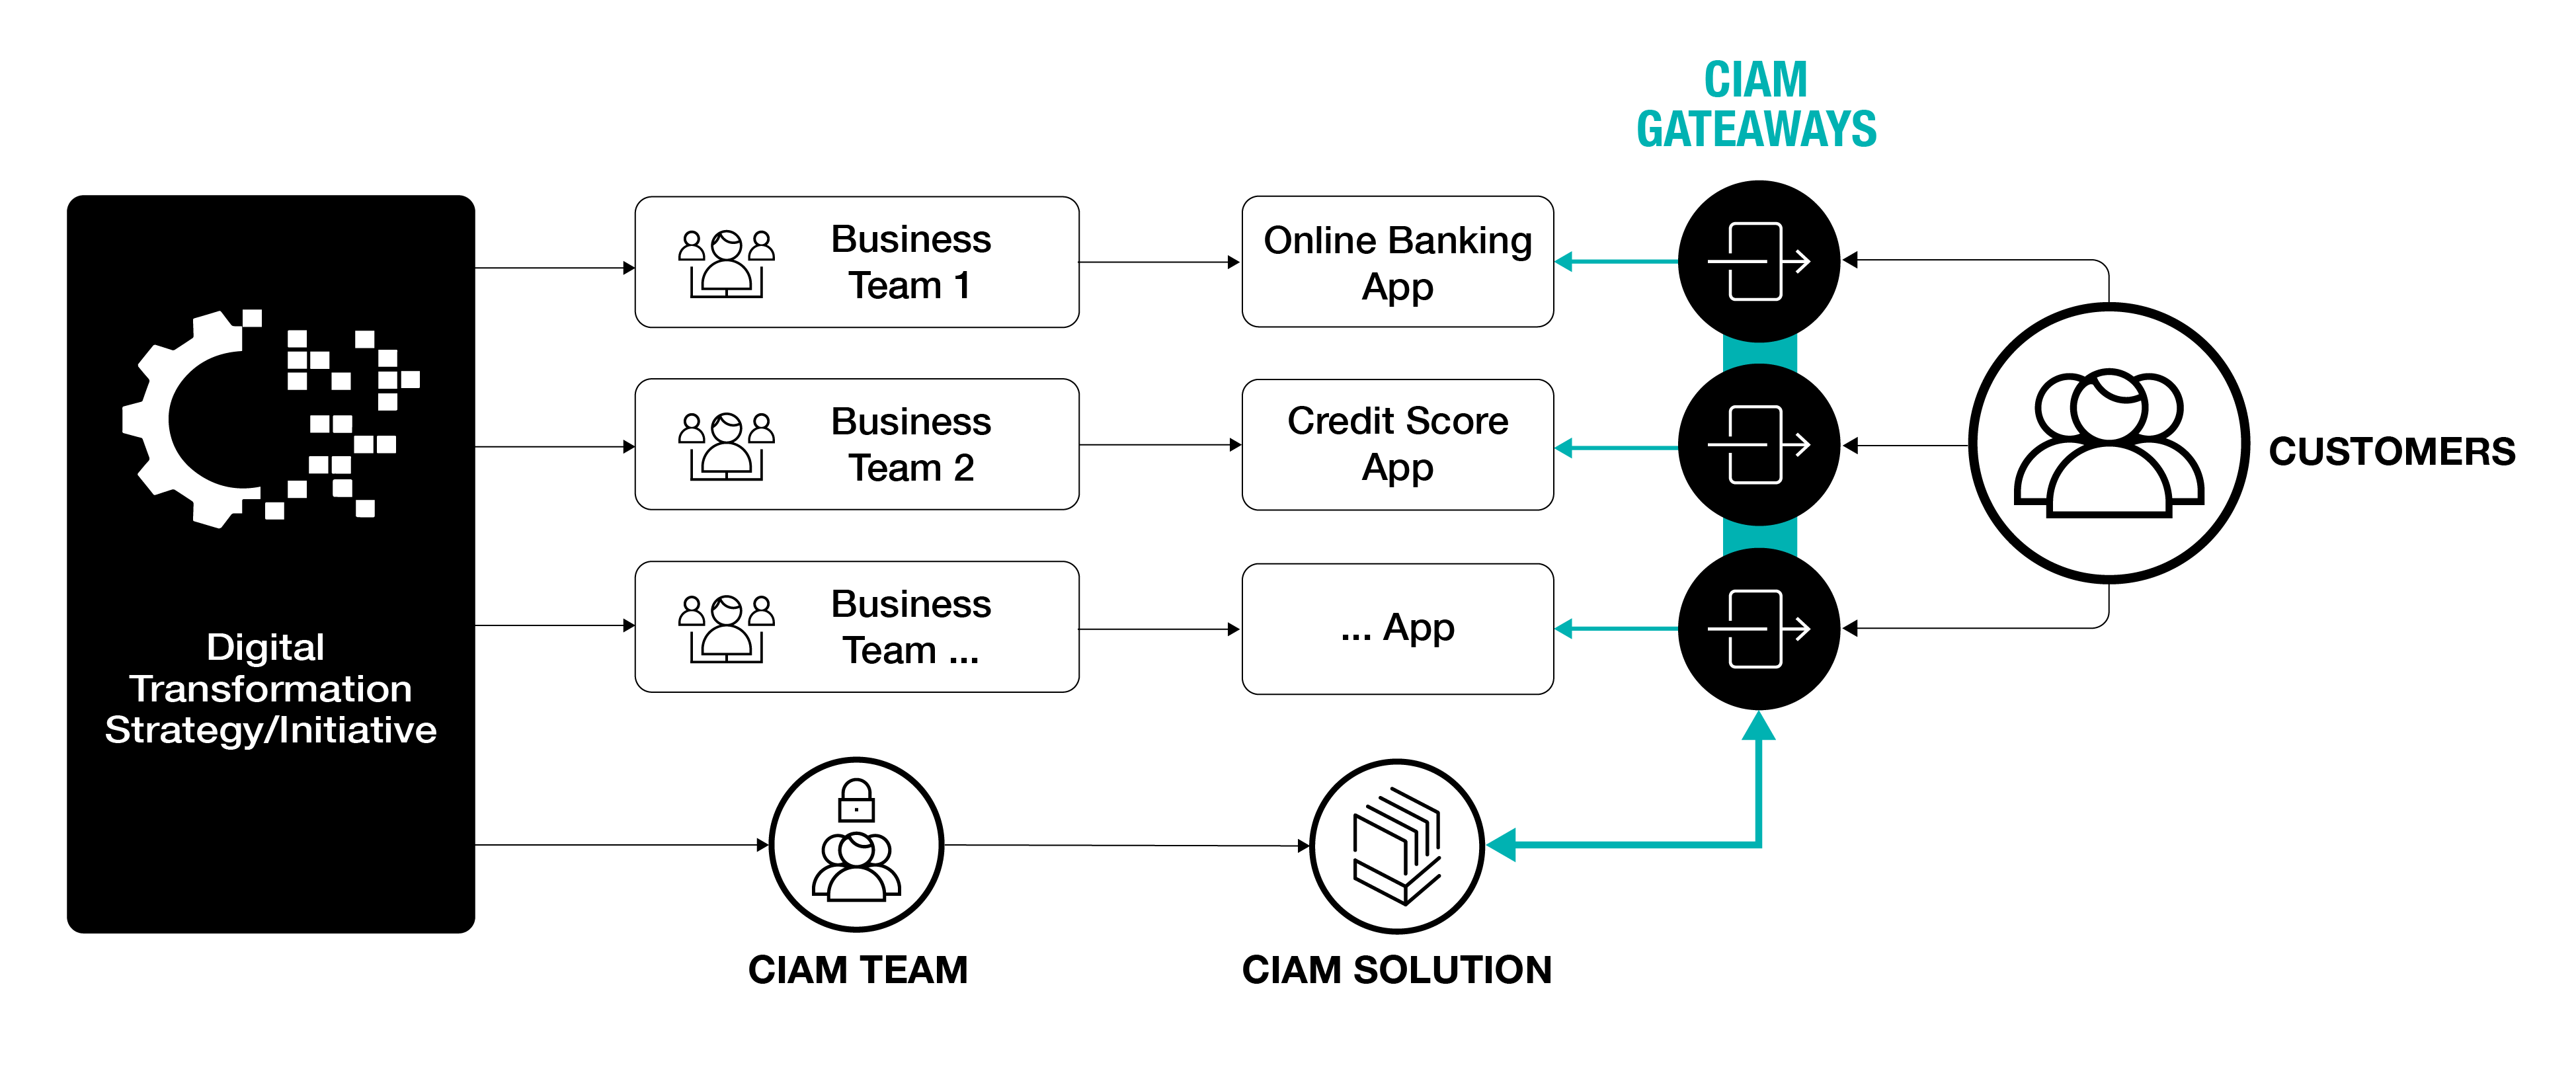 Your Gateway to a Simple, Modern and Adaptable CIAM